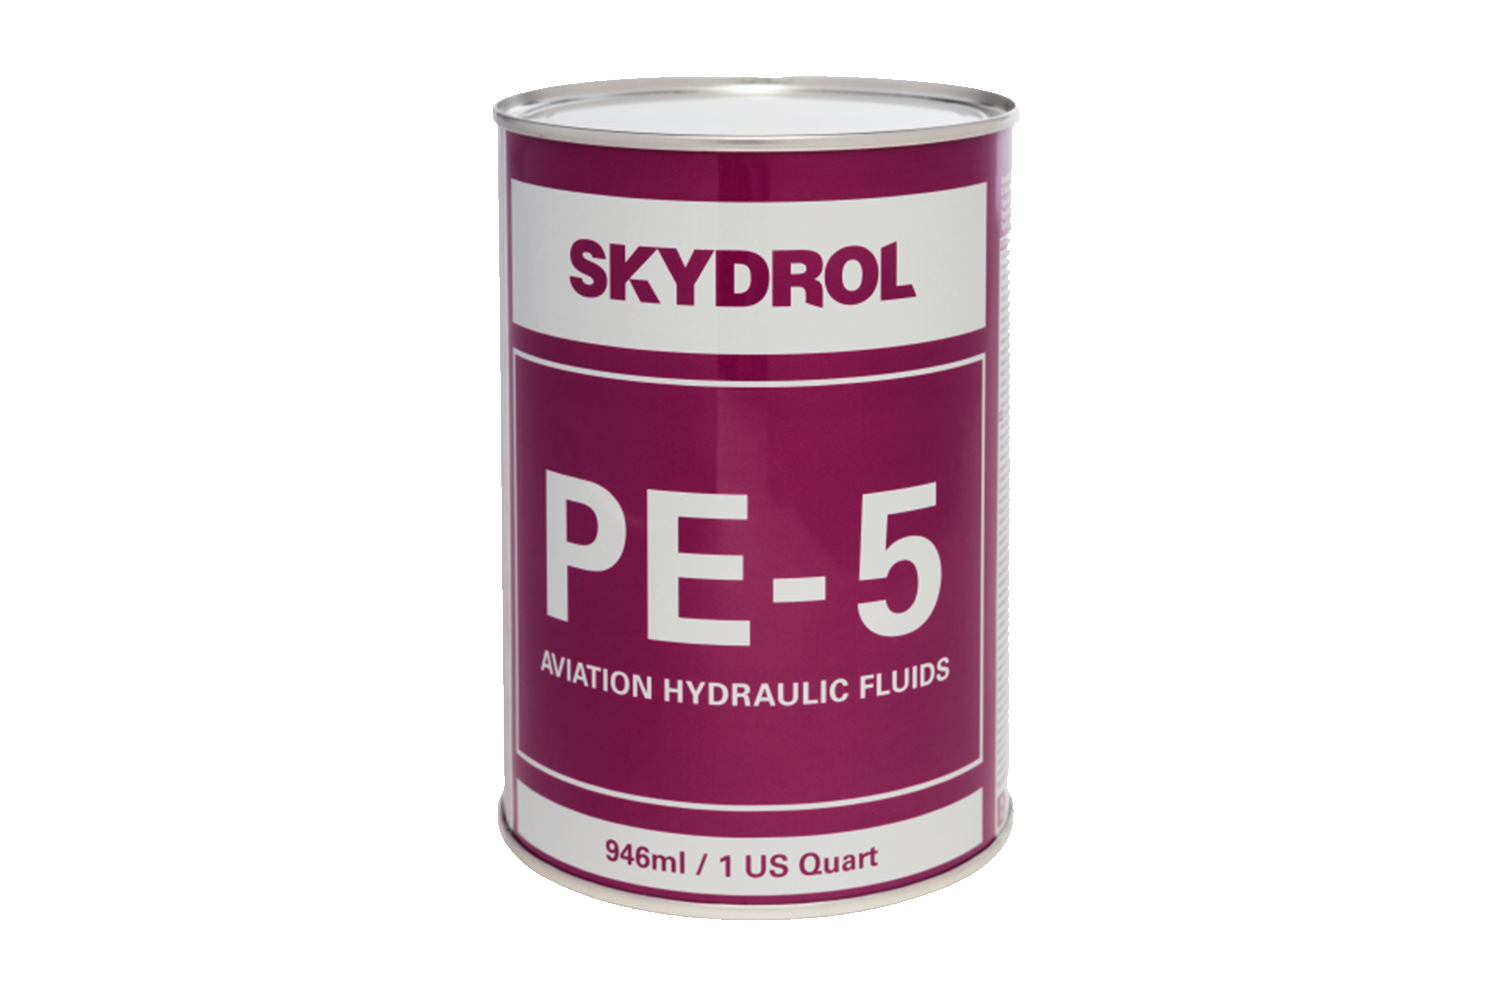 images/j2store/products/diffusees/31972-SKYDROL-PE-5-1QT.jpg